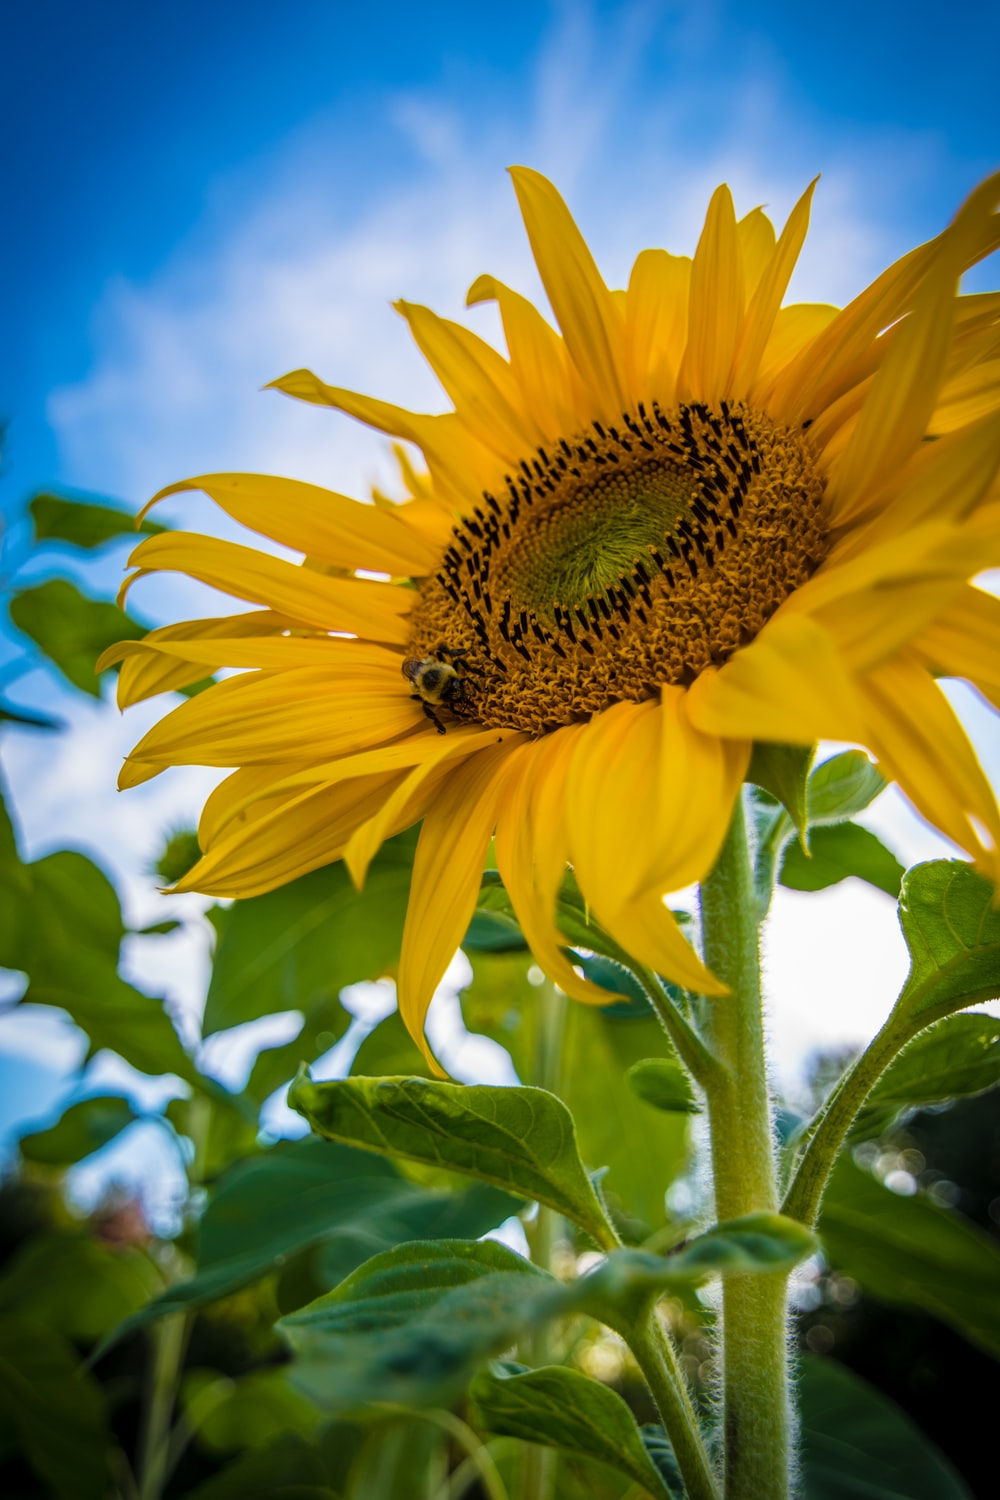 worm's-eye view of yellow sunflower